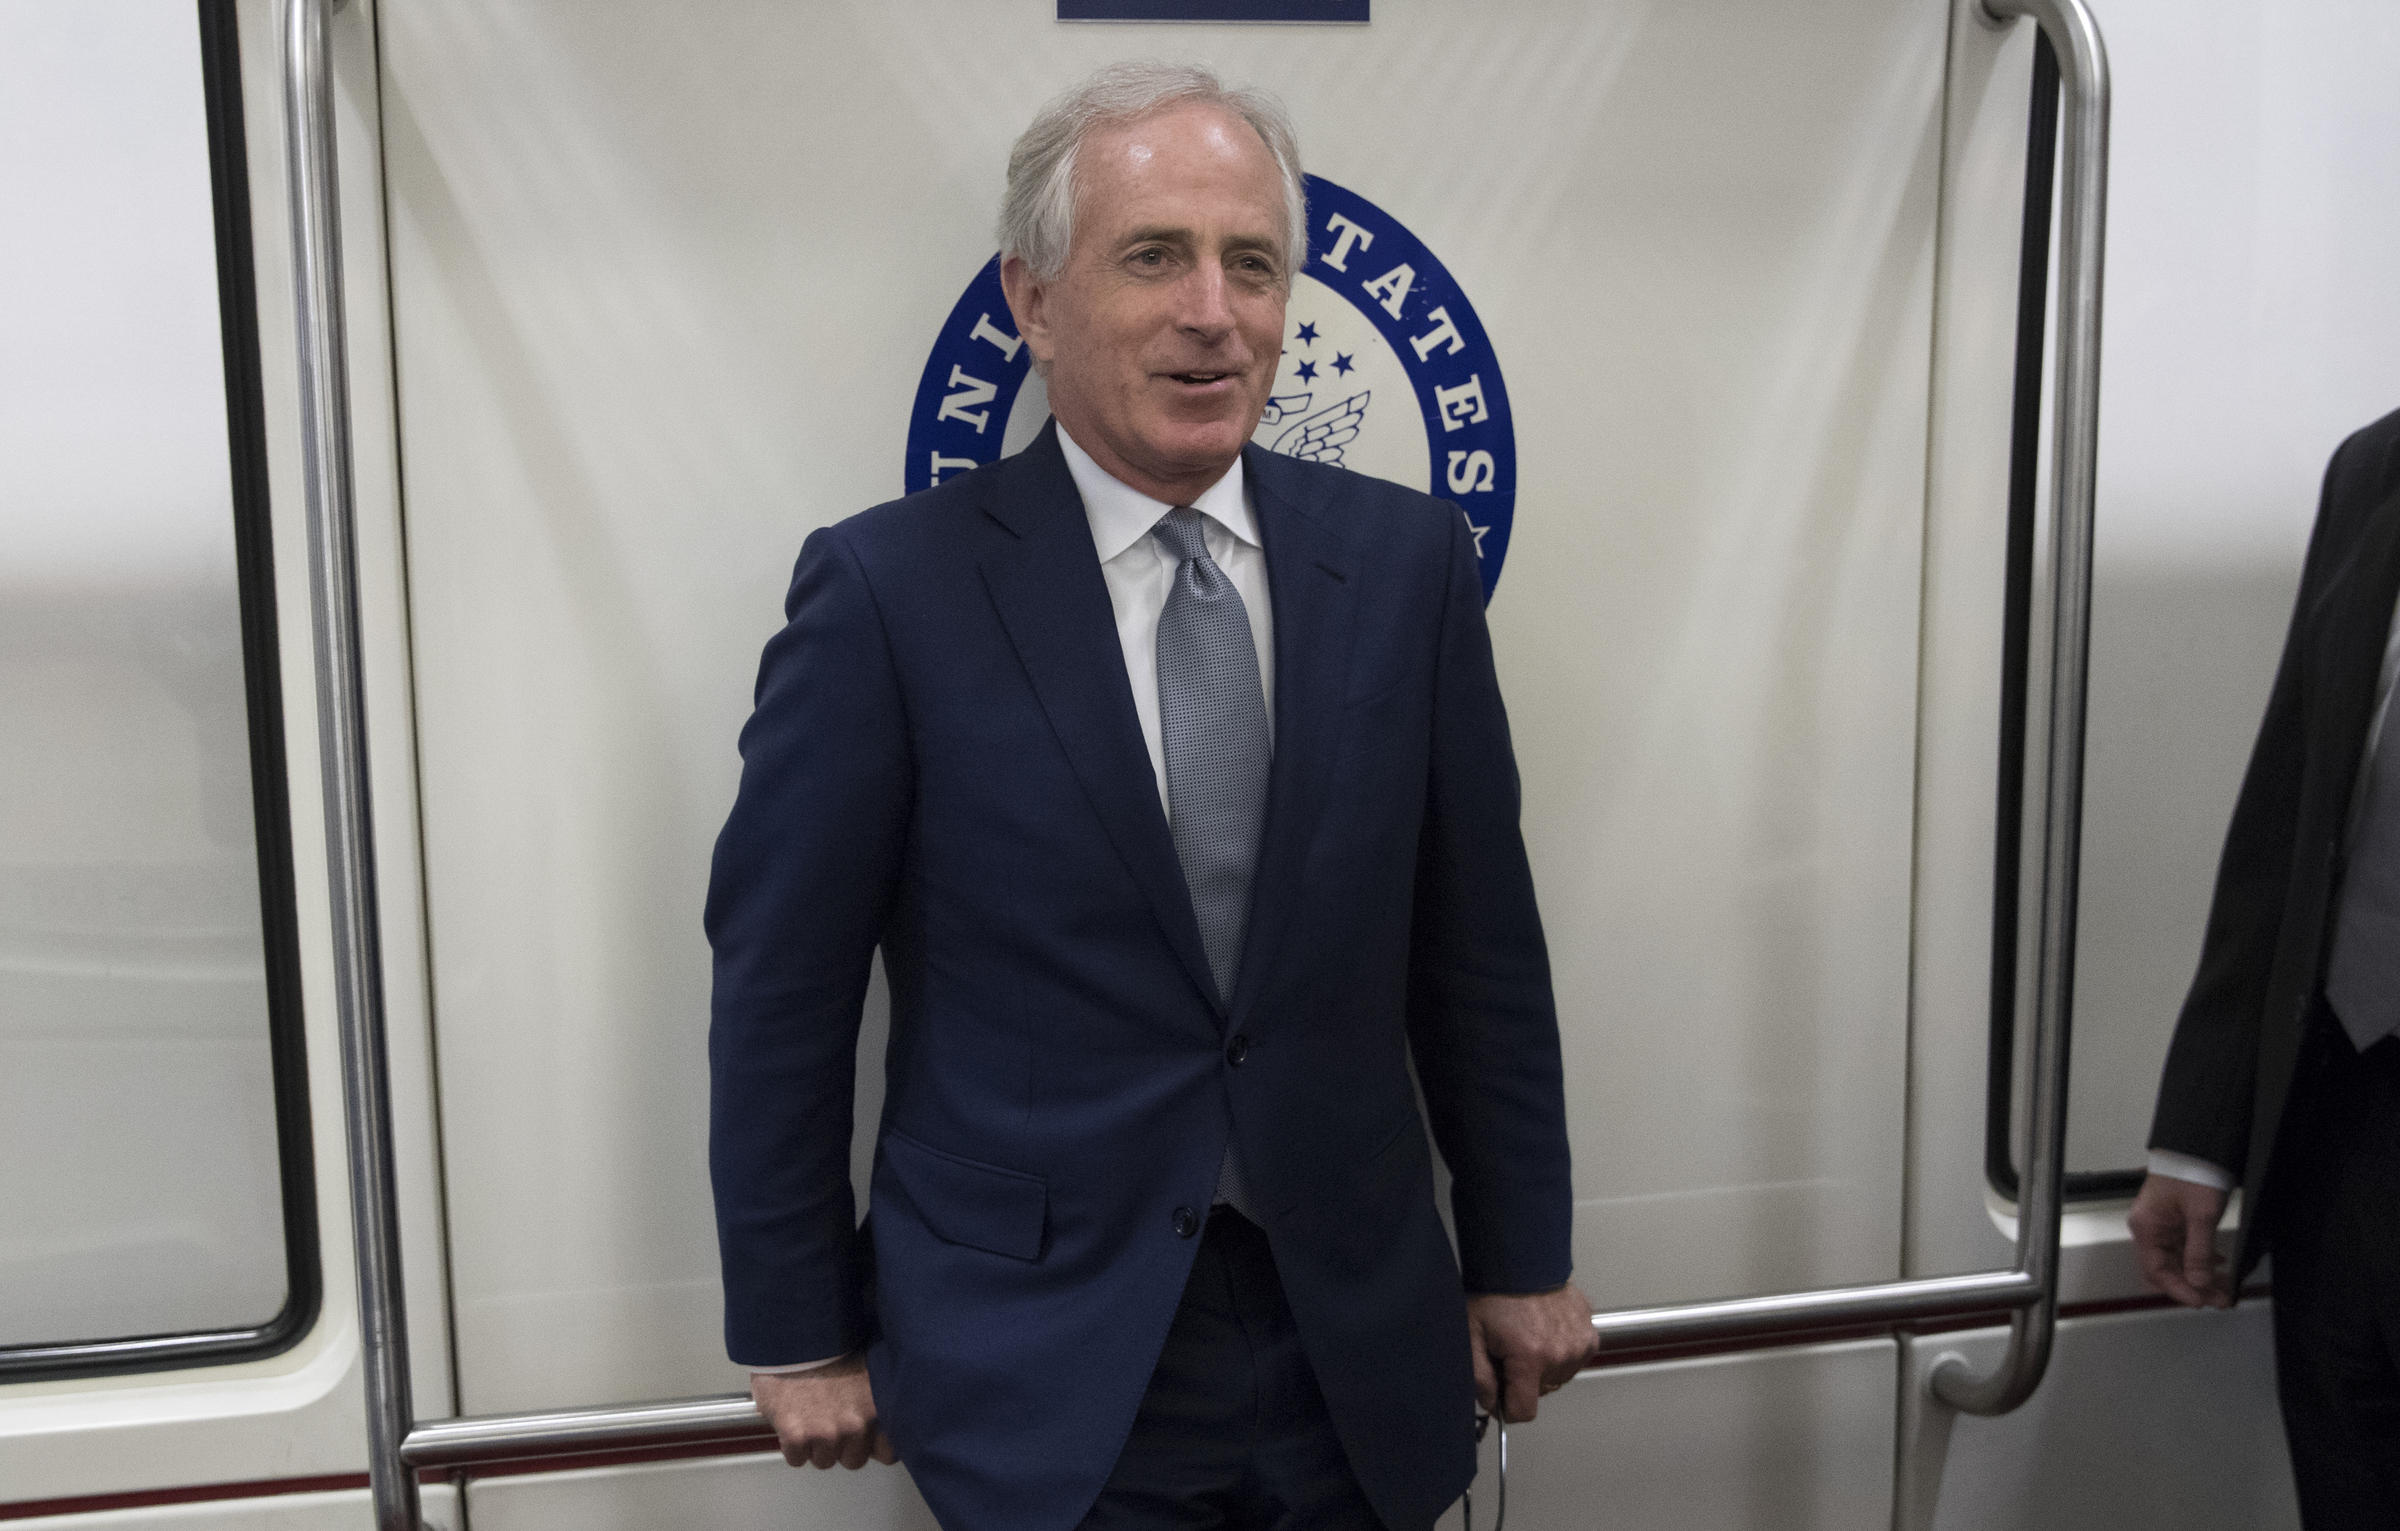 Tennessee Sen. Bob Corker 'listening' to those urging him to rethink retirement